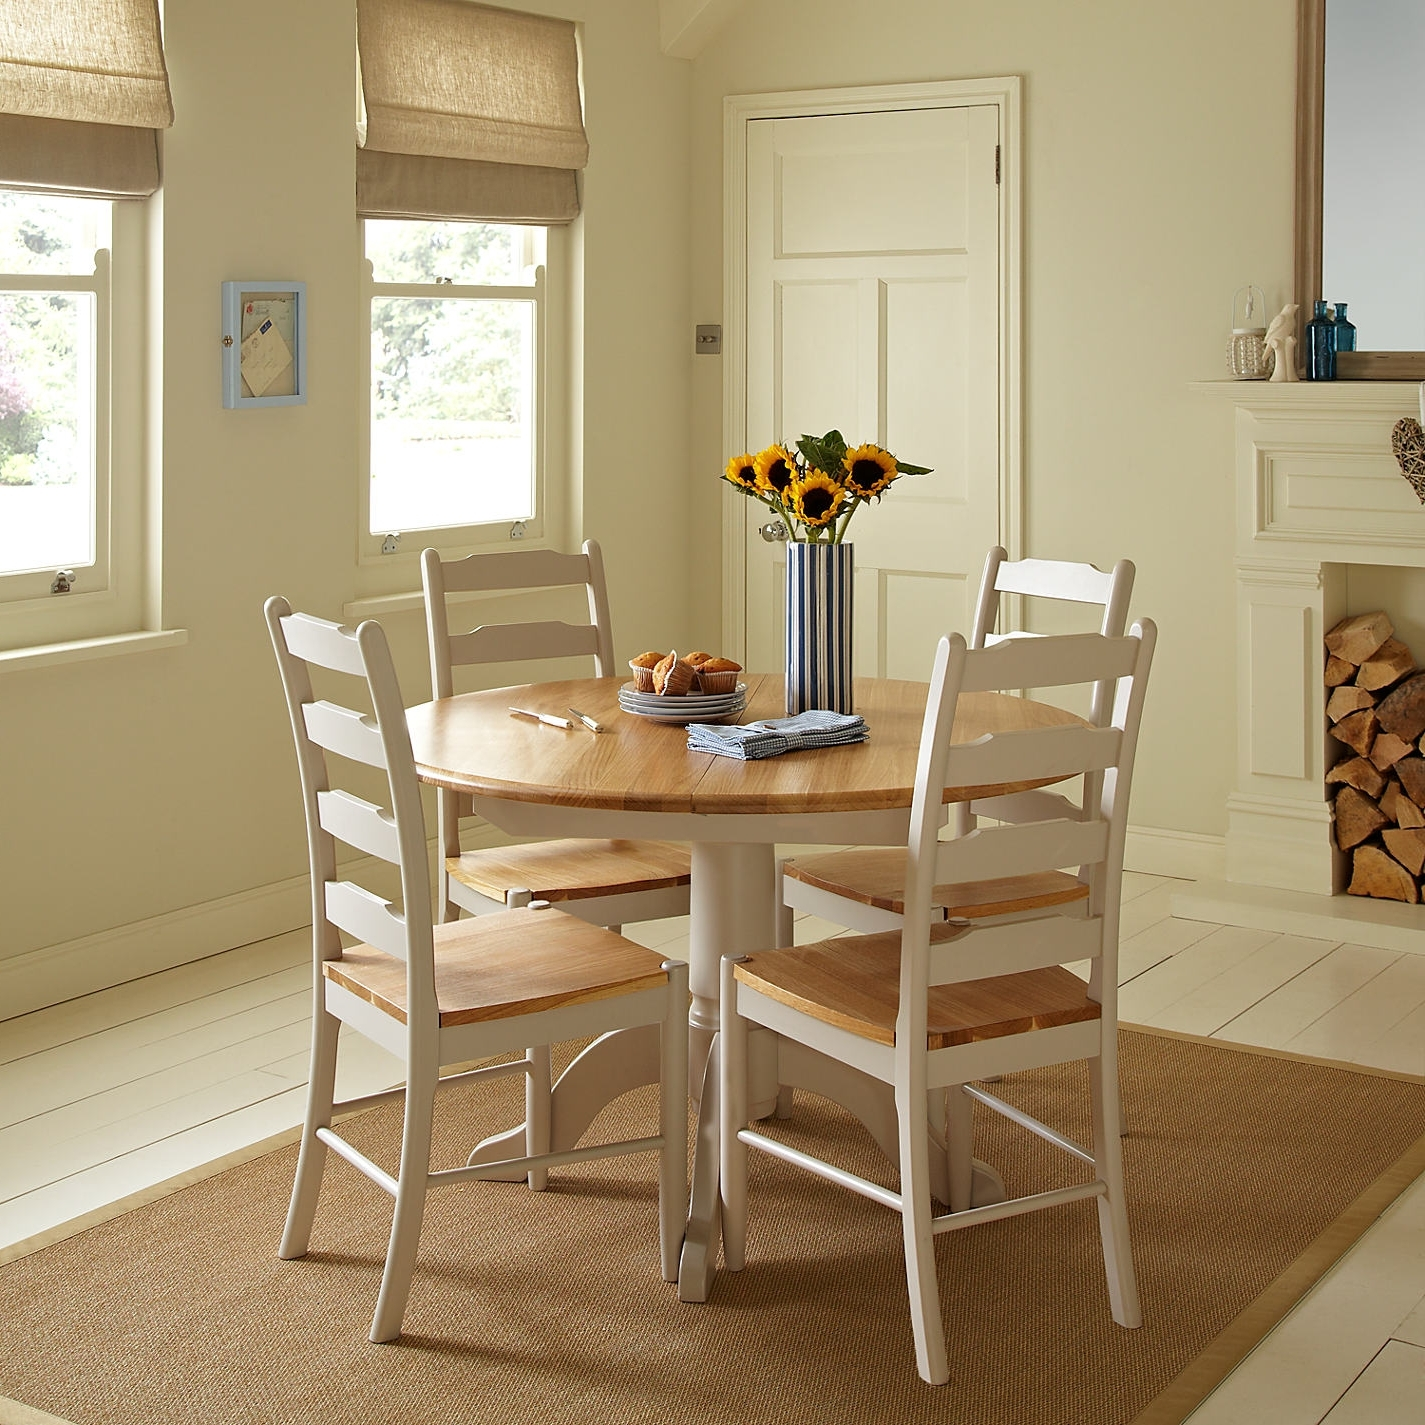 Latest Round Dining Table And Chairs Circular Dining Table For 4 New Dining Pertaining To Circular Dining Tables For (View 5 of 25)